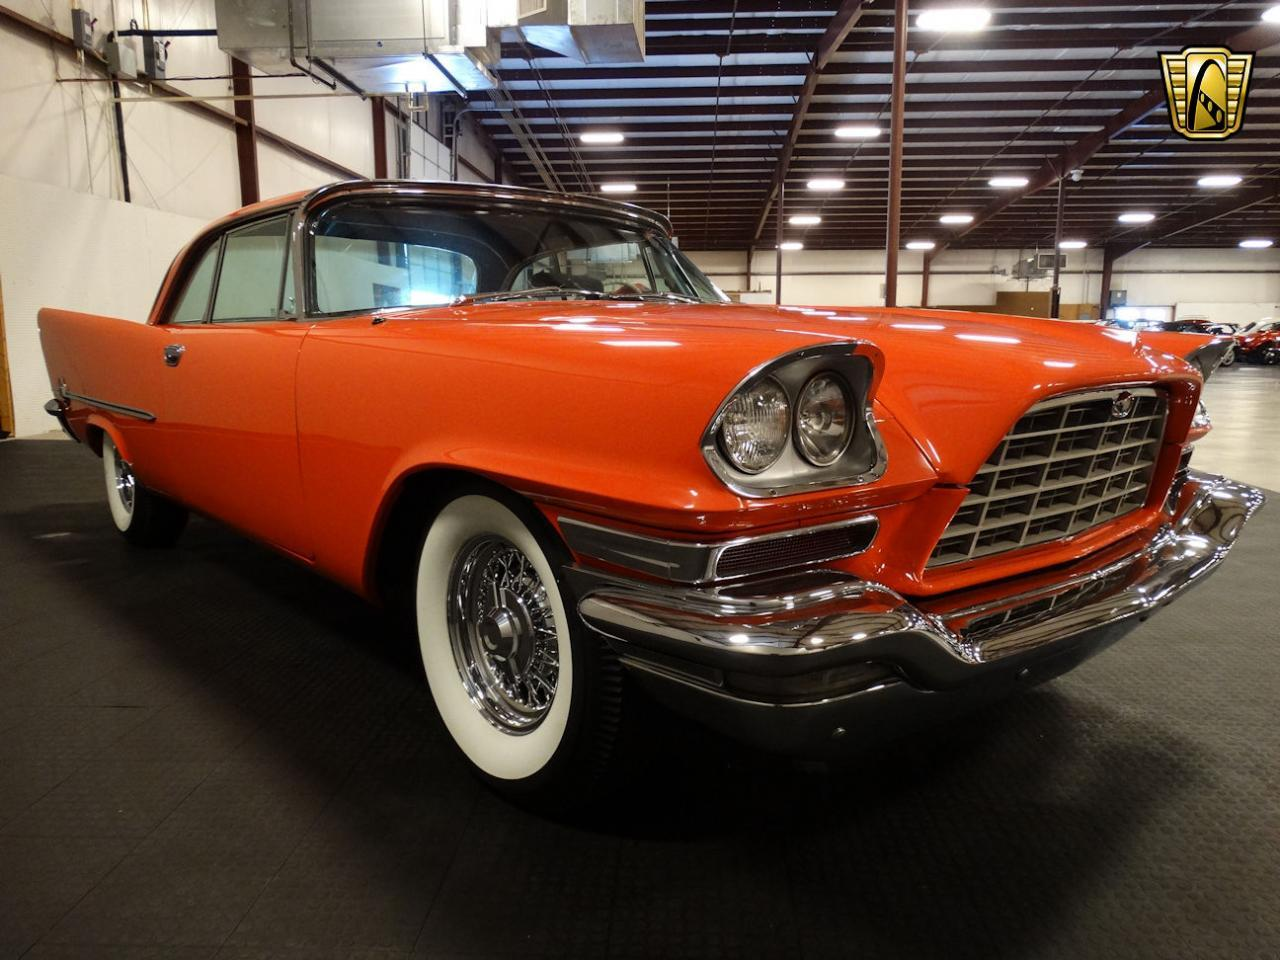 Large Picture of '57 Chrysler 300 - $44,995.00 Offered by Gateway Classic Cars - Louisville - MACC